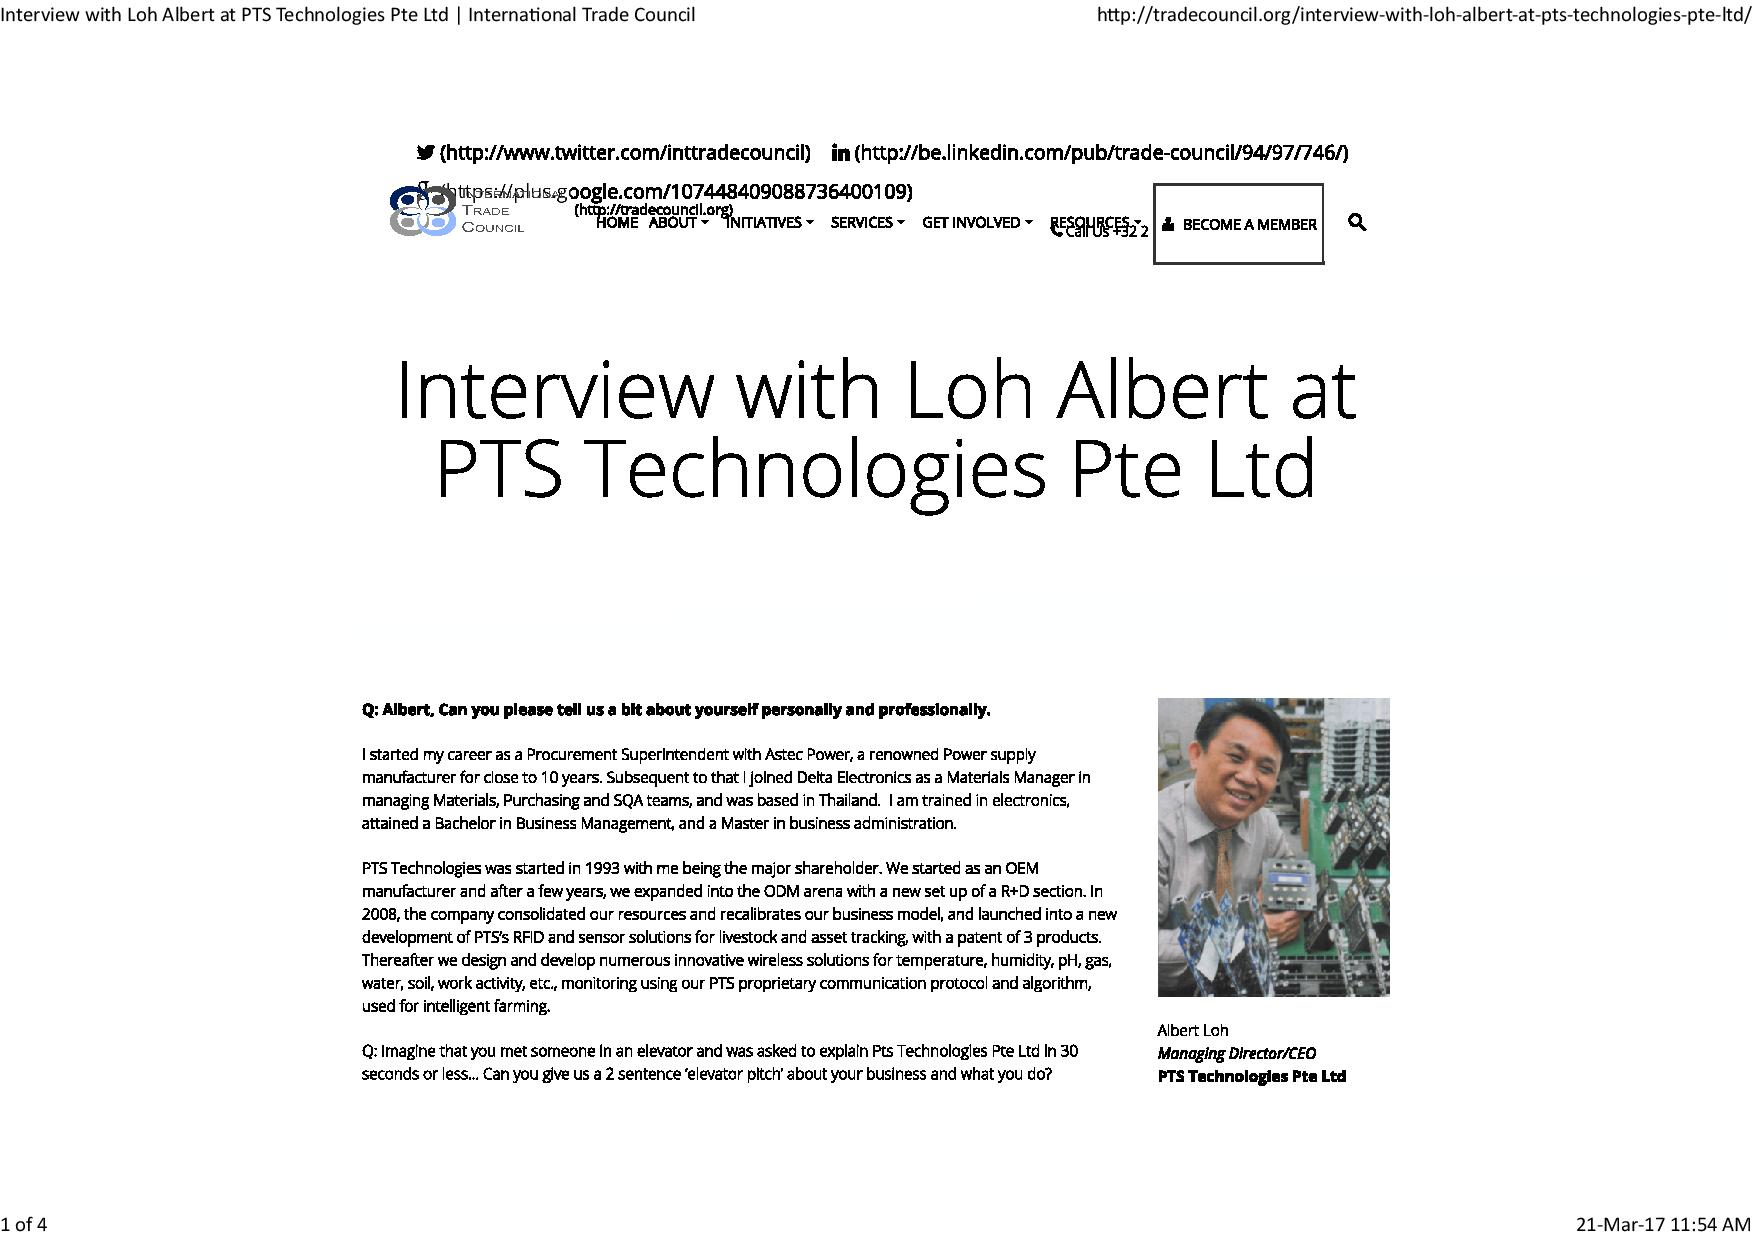 Interview with Loh Albert at PTS Technologies Pte Ltd   International Trade Council-page-001